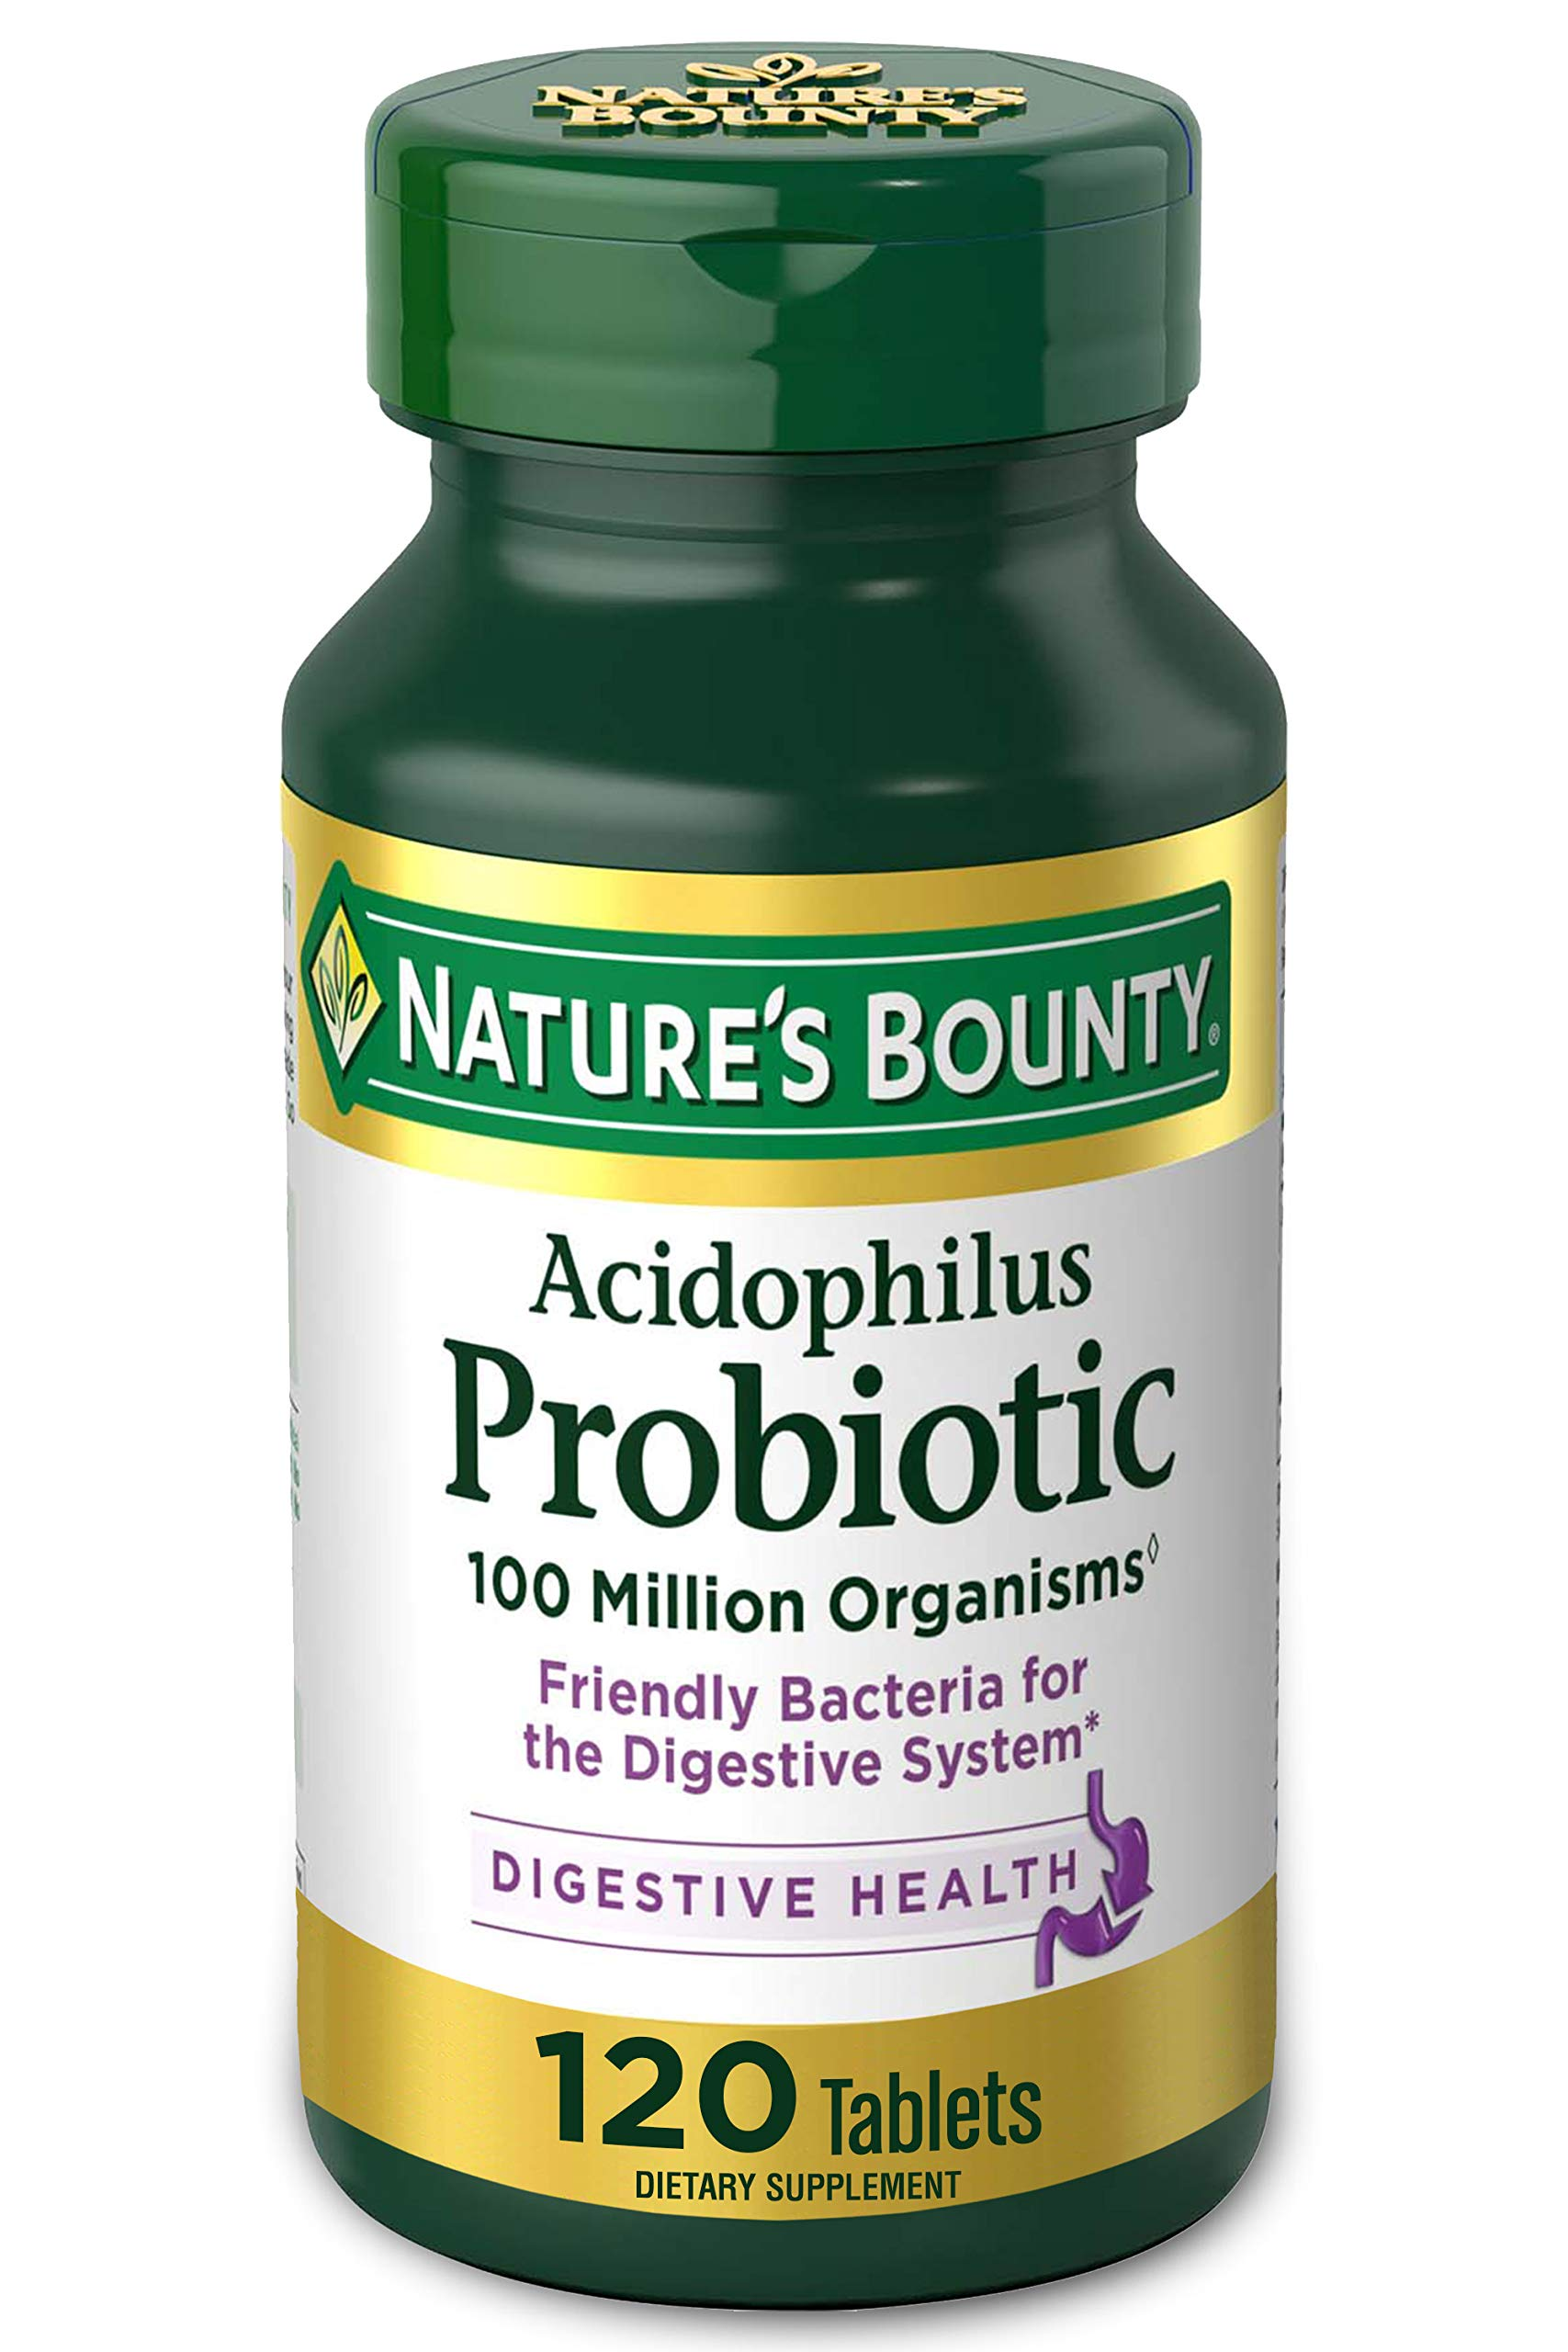 Acidophilus Probiotic by Nature's Bounty, Dietary Supplement, For Digestive Health, 120 Tablets (Packaging May Vary)